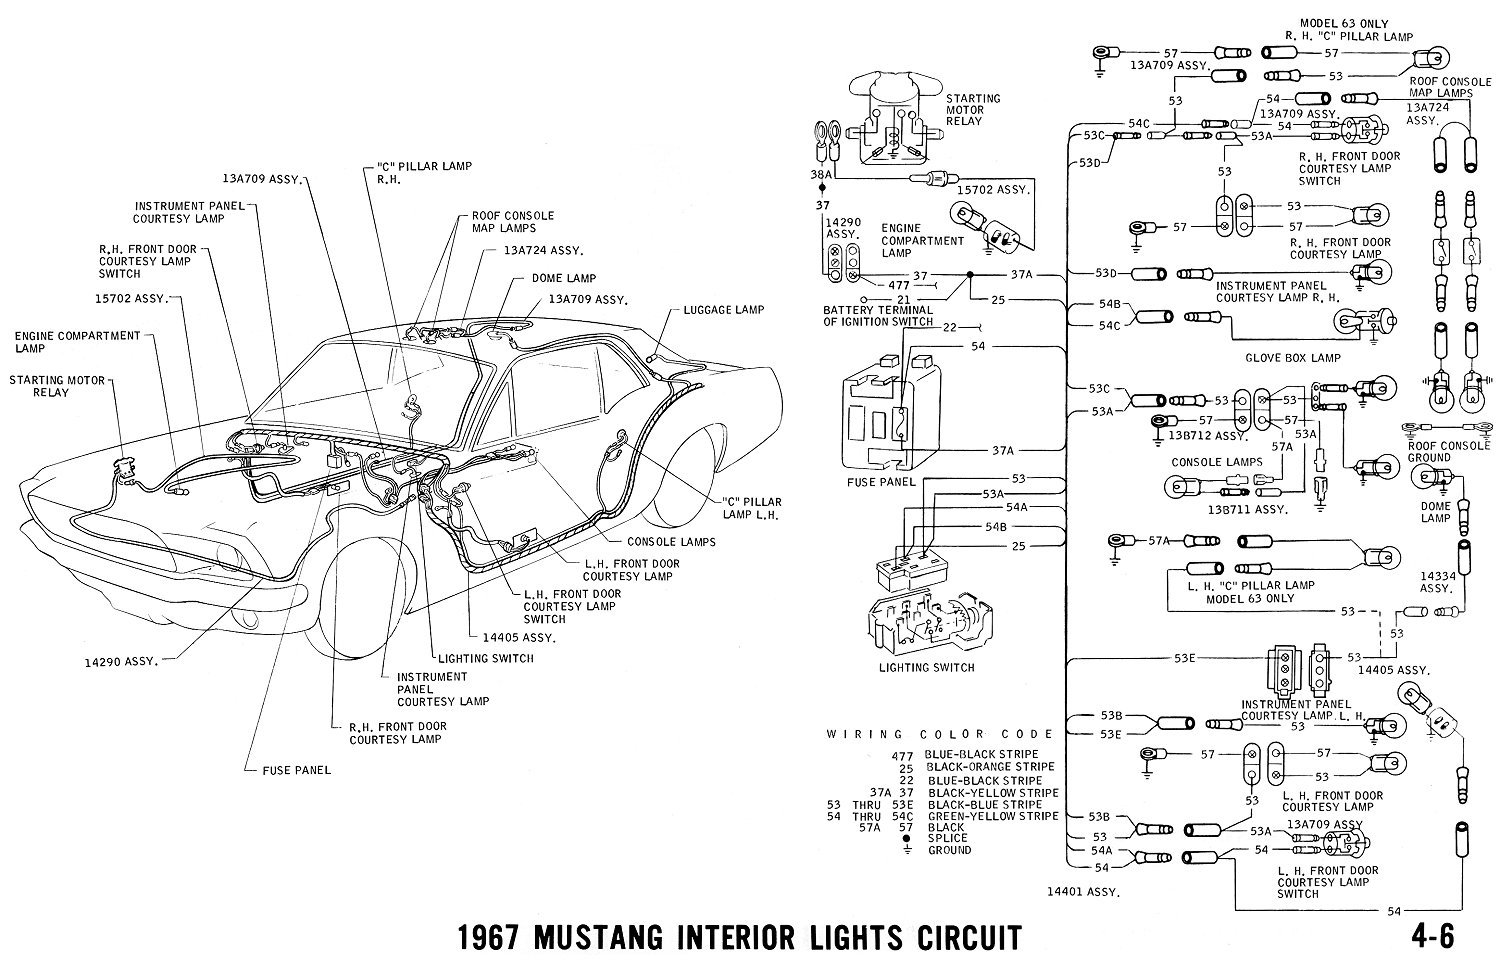 66 mustang ignition switch diagram  diagram  wiring diagram images